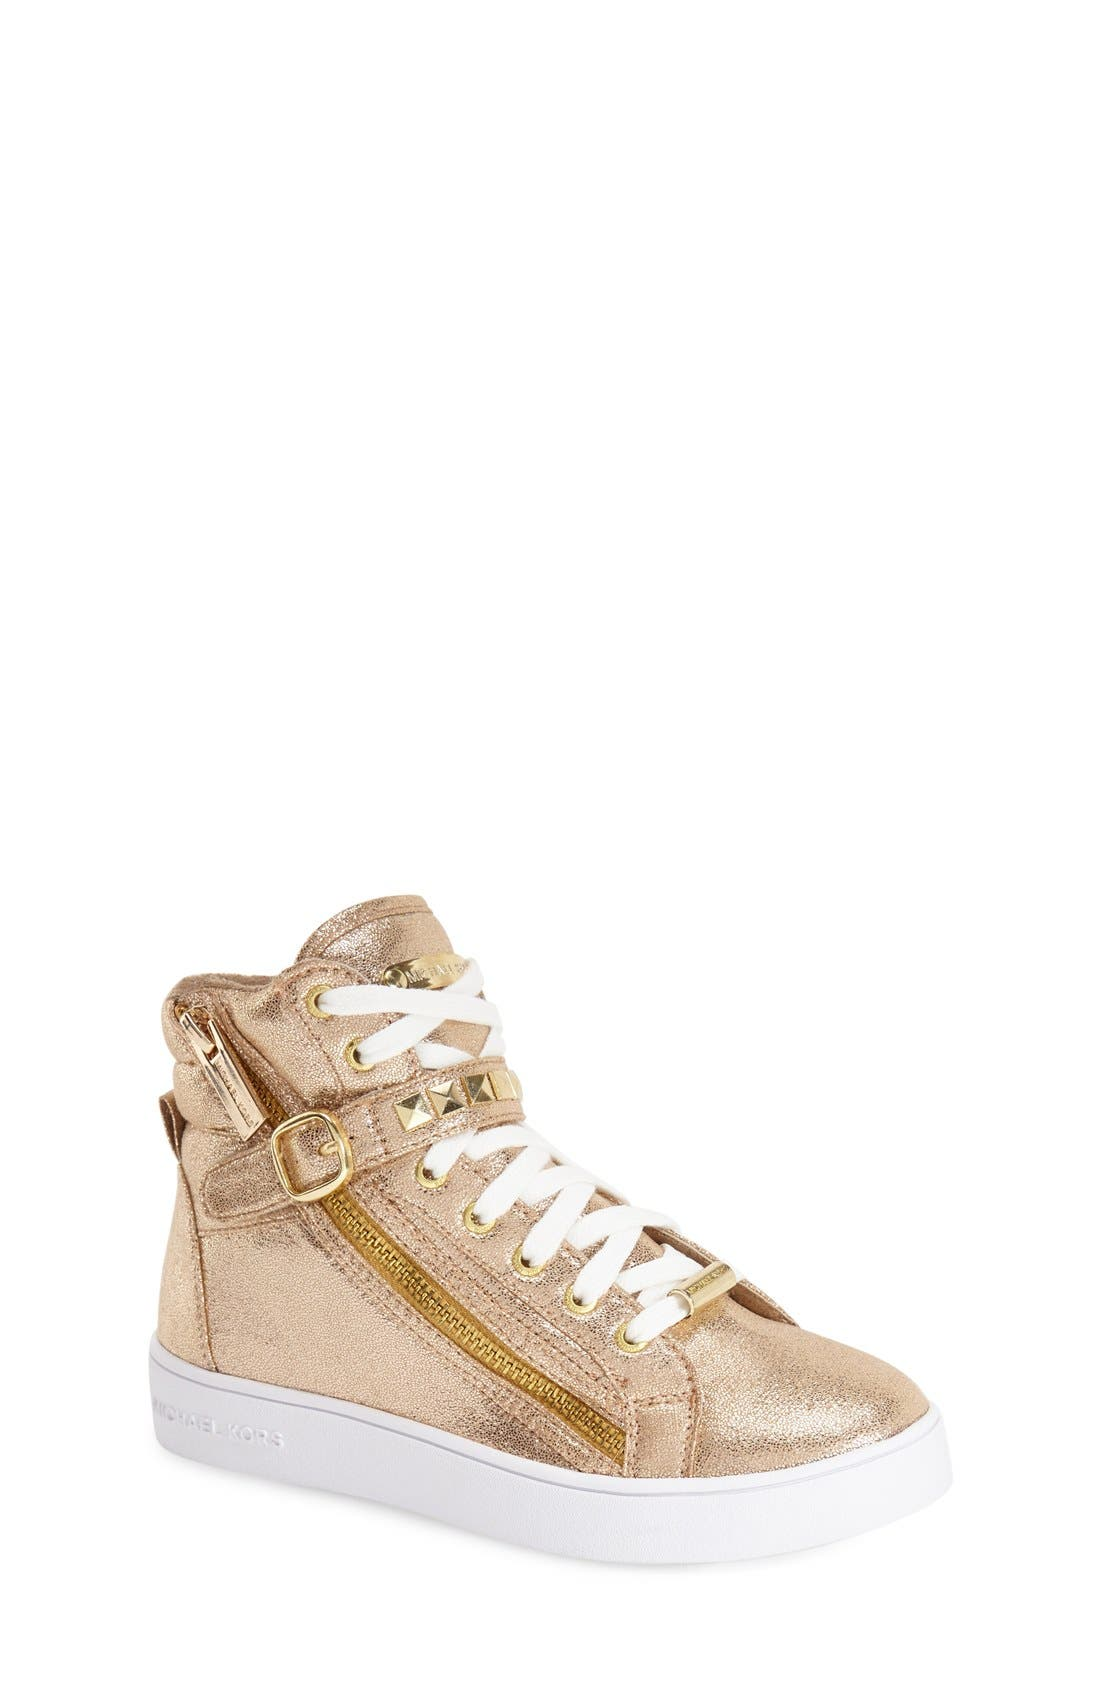 MICHAEL MICHAEL KORS 'Ivy Rory' High Top Sneaker